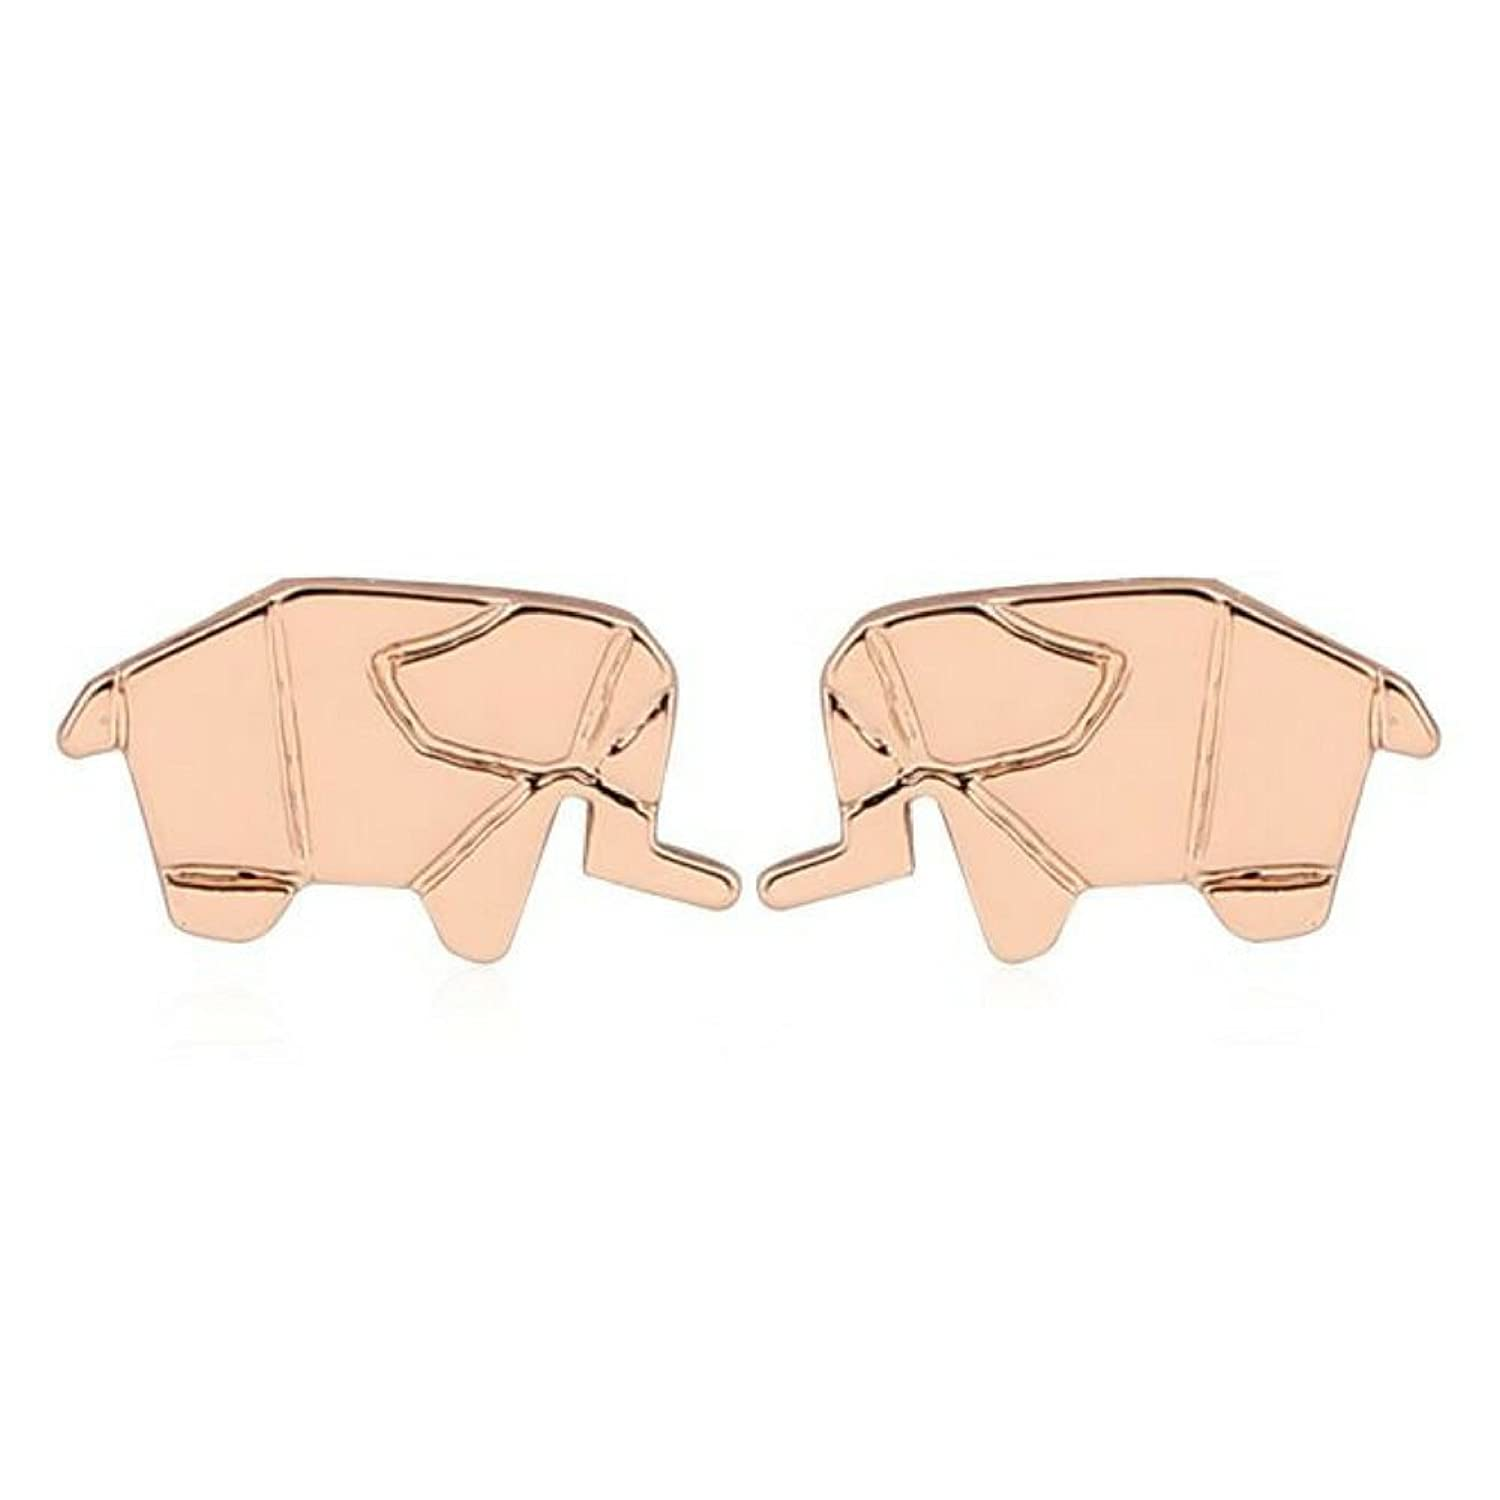 Elephant Stud Earrings: Gift Ready- Packaged in Black Pouch - Boho Chic Accessories